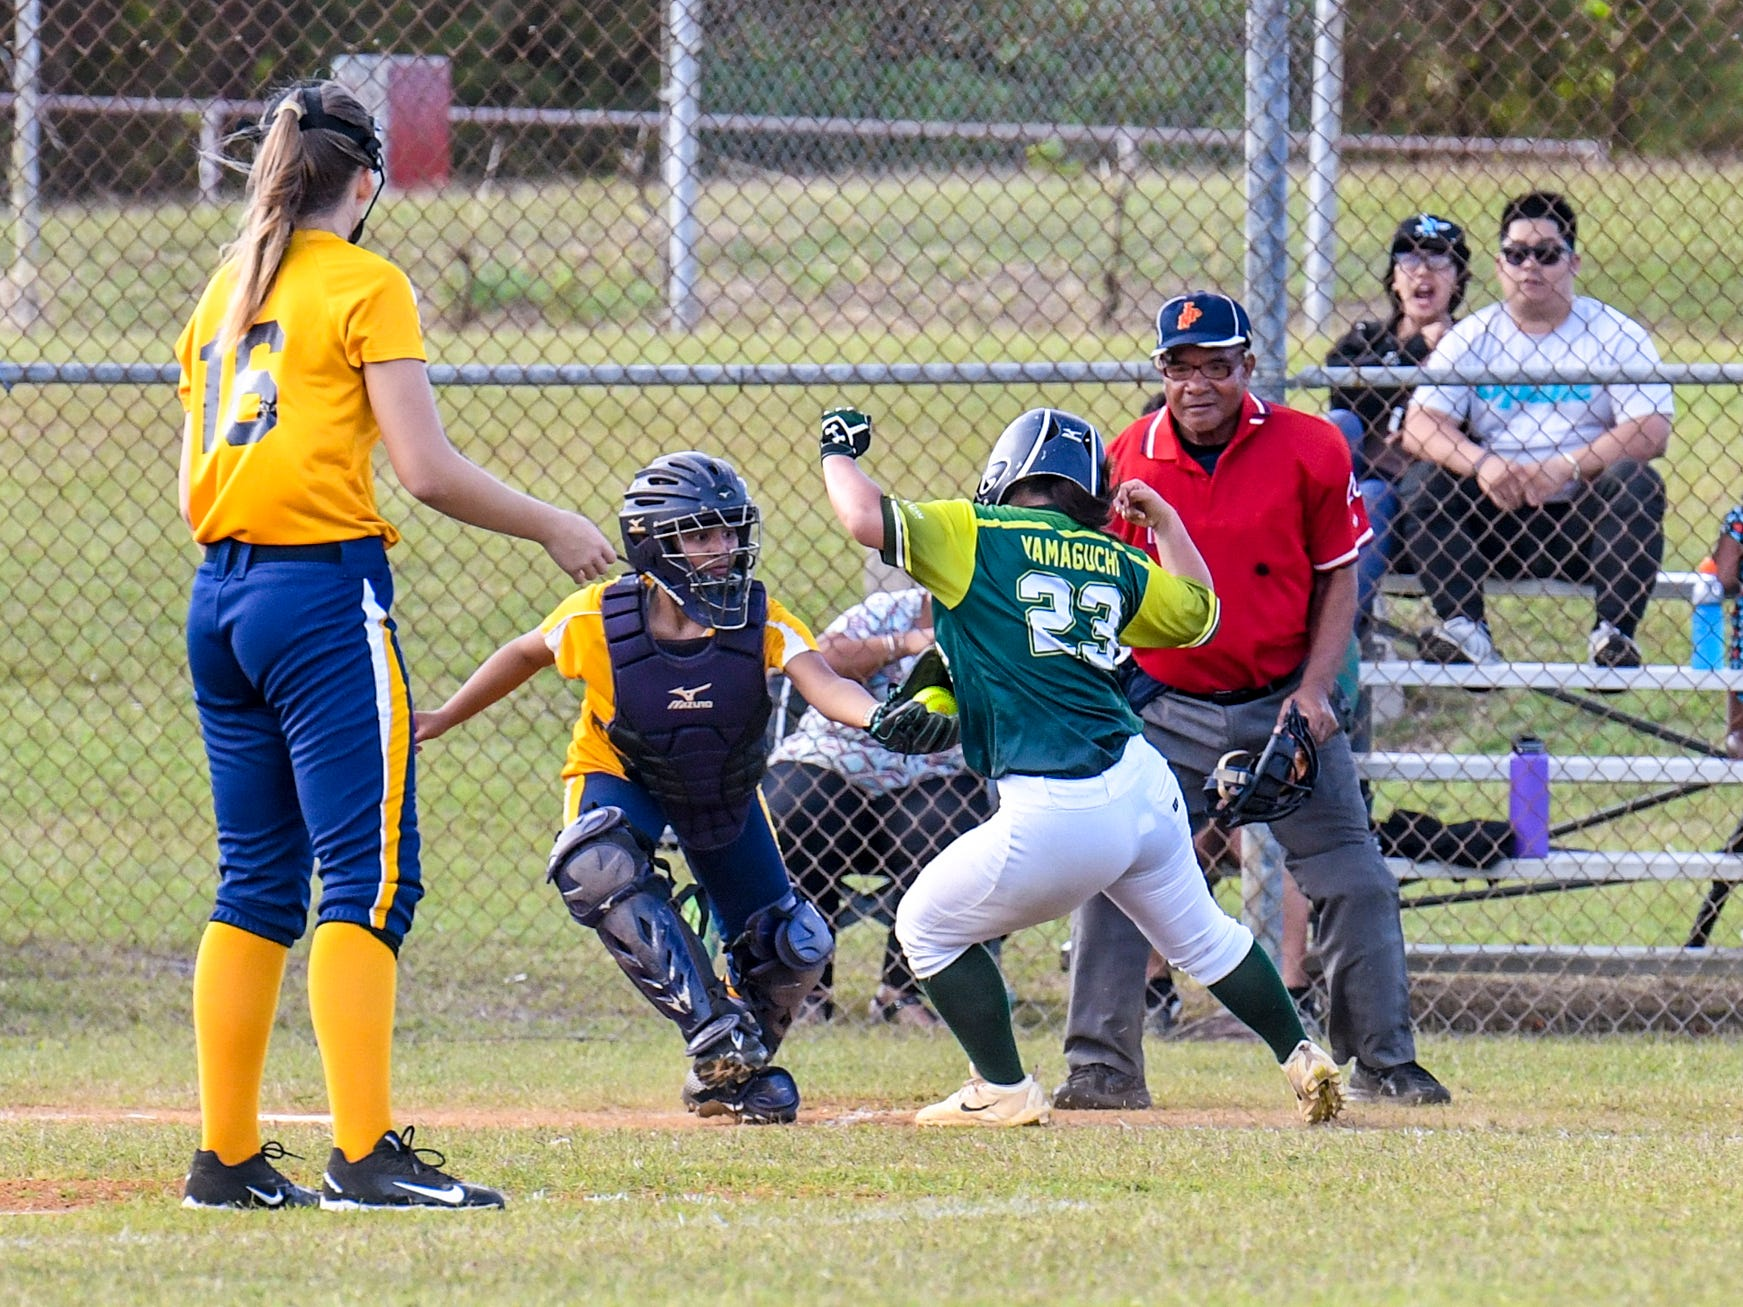 The John F. Kennedy Islanders' Kiyoni Yamaguchi (23) attempts to dodge a tag waiting for her at home plate during an IIAAG girls softball game against the Guam High Panthers at the JFK High School campus in Tamuning on Thursday, Feb. 7, 2019.